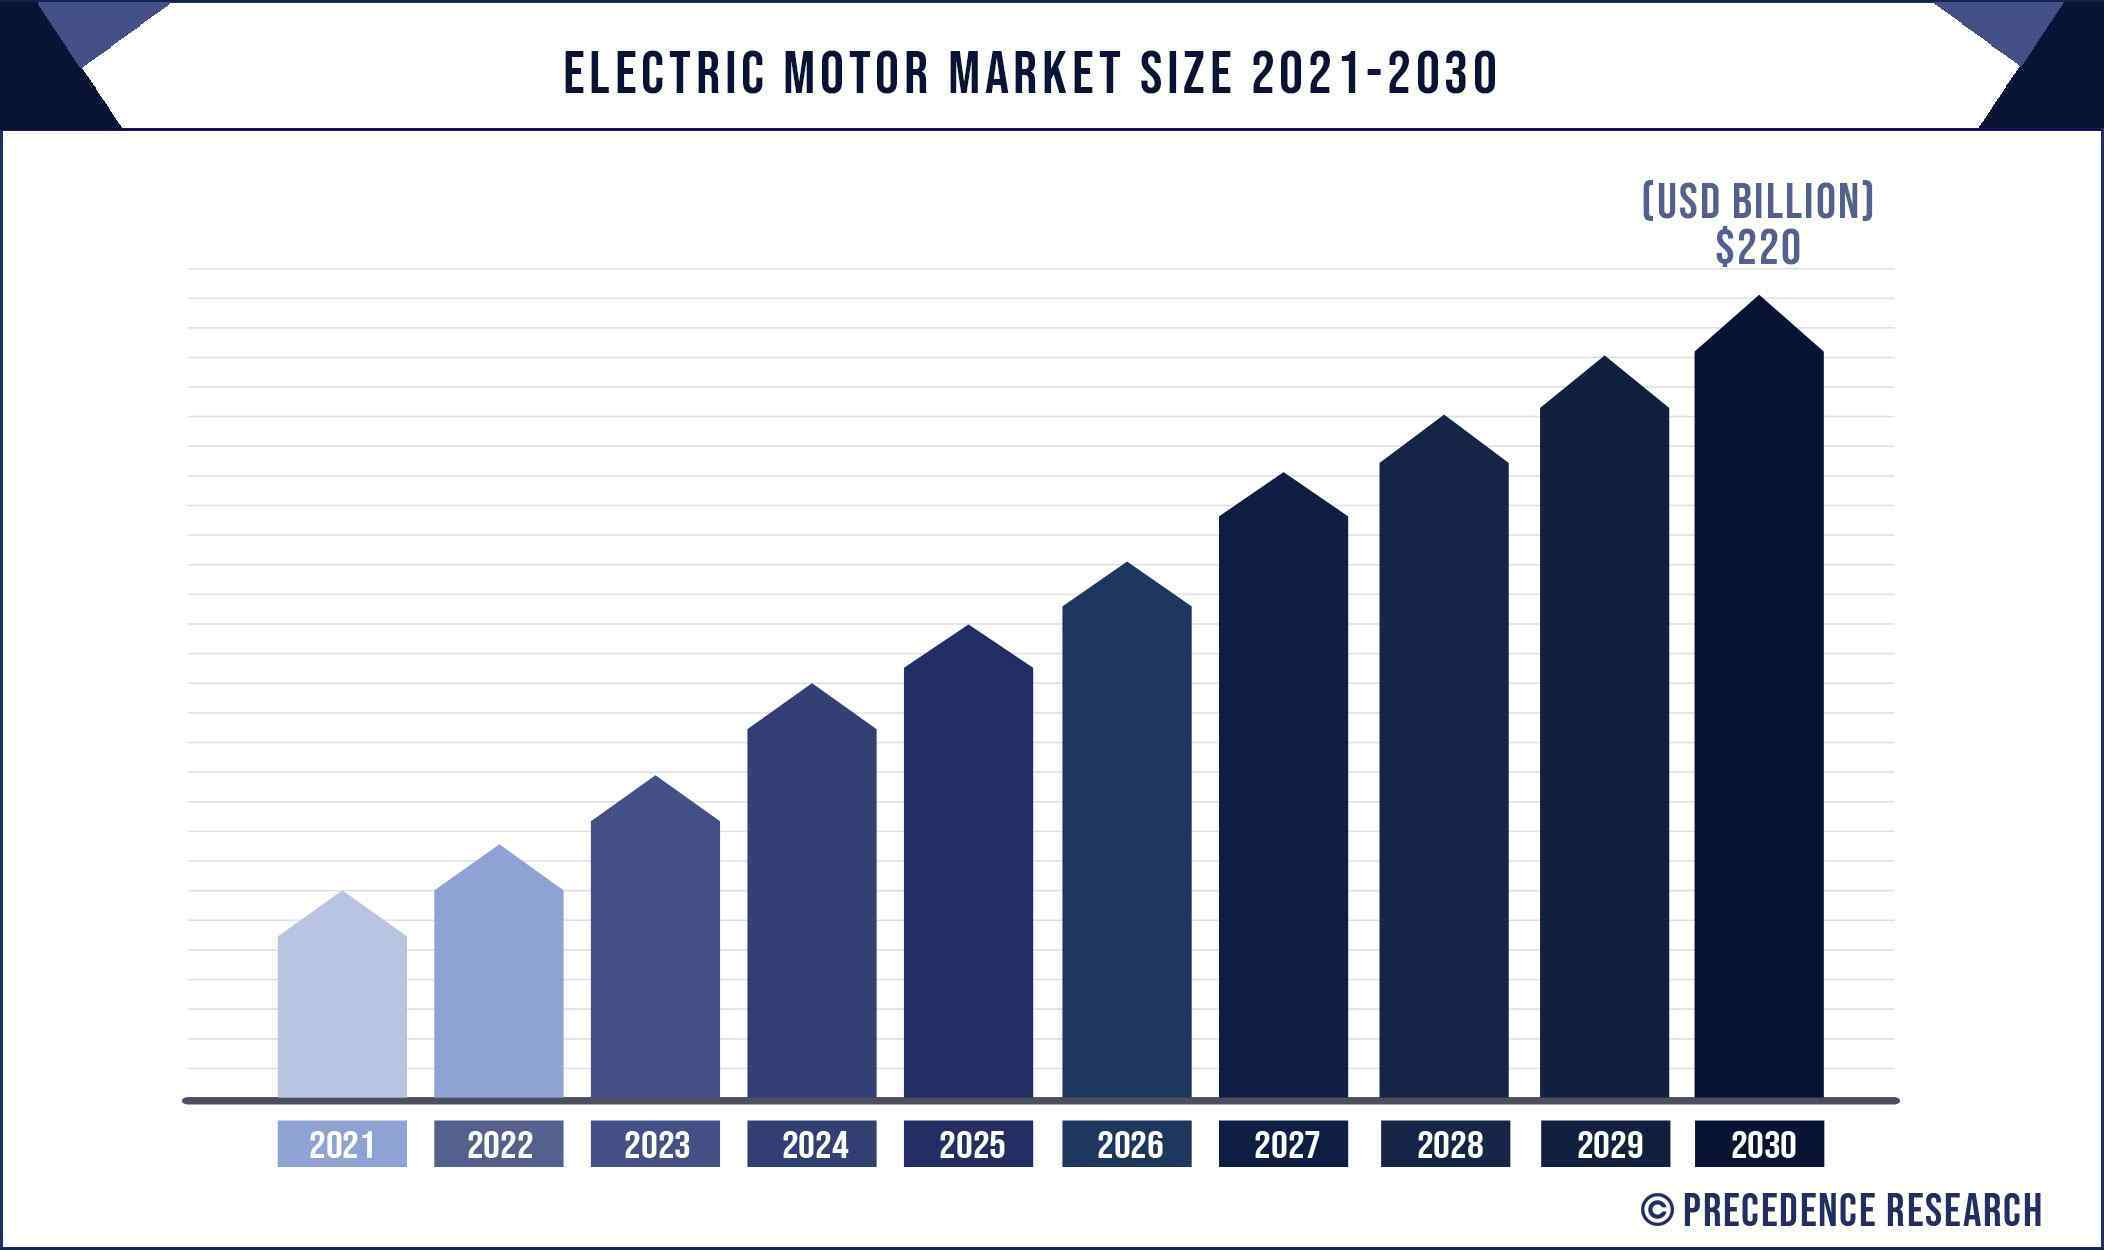 Electric Motor Market Size 2021 to 2030